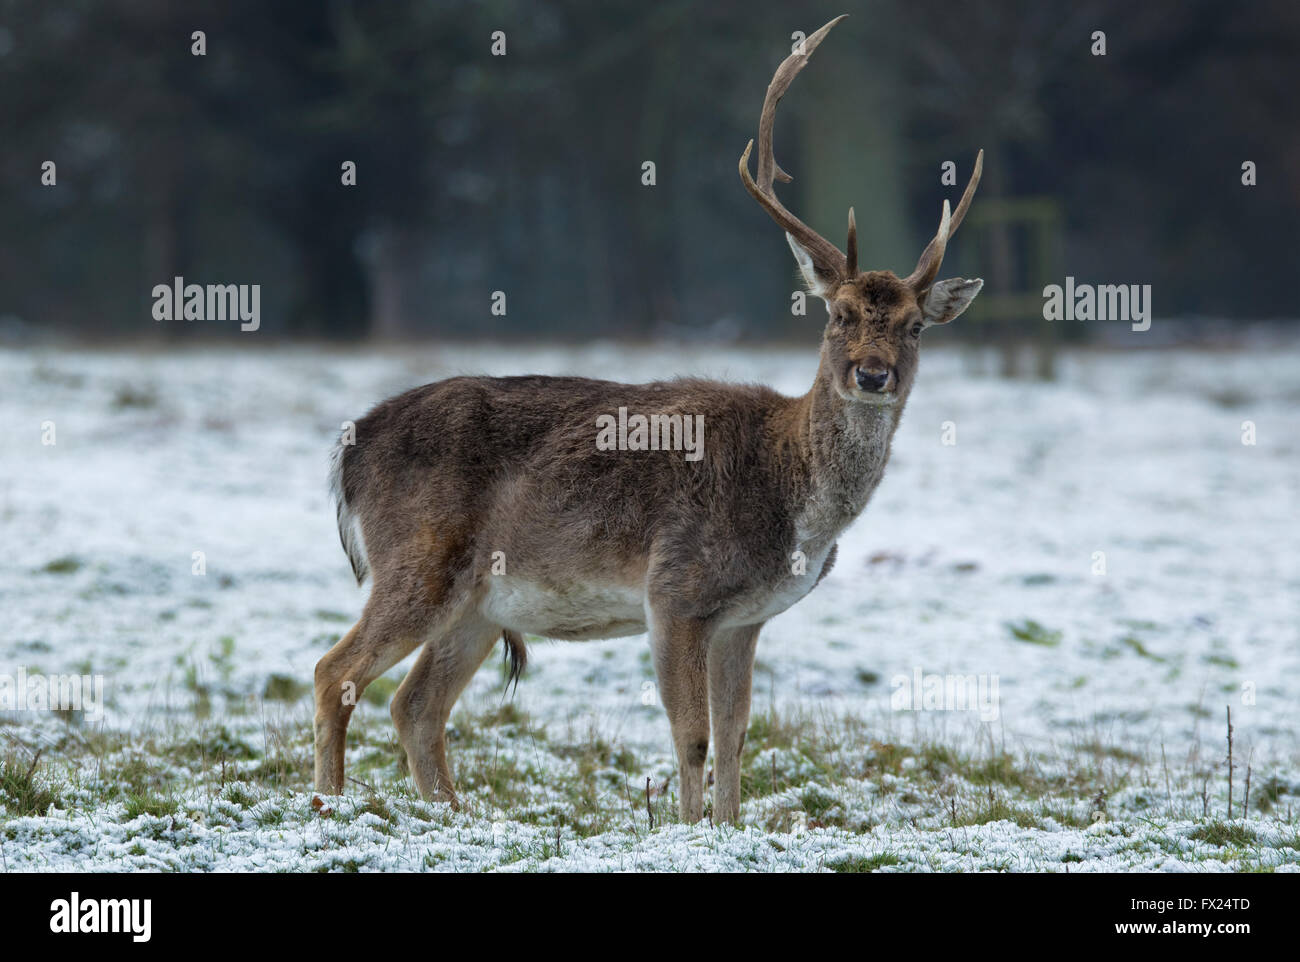 Injured stag in winter - Stock Image